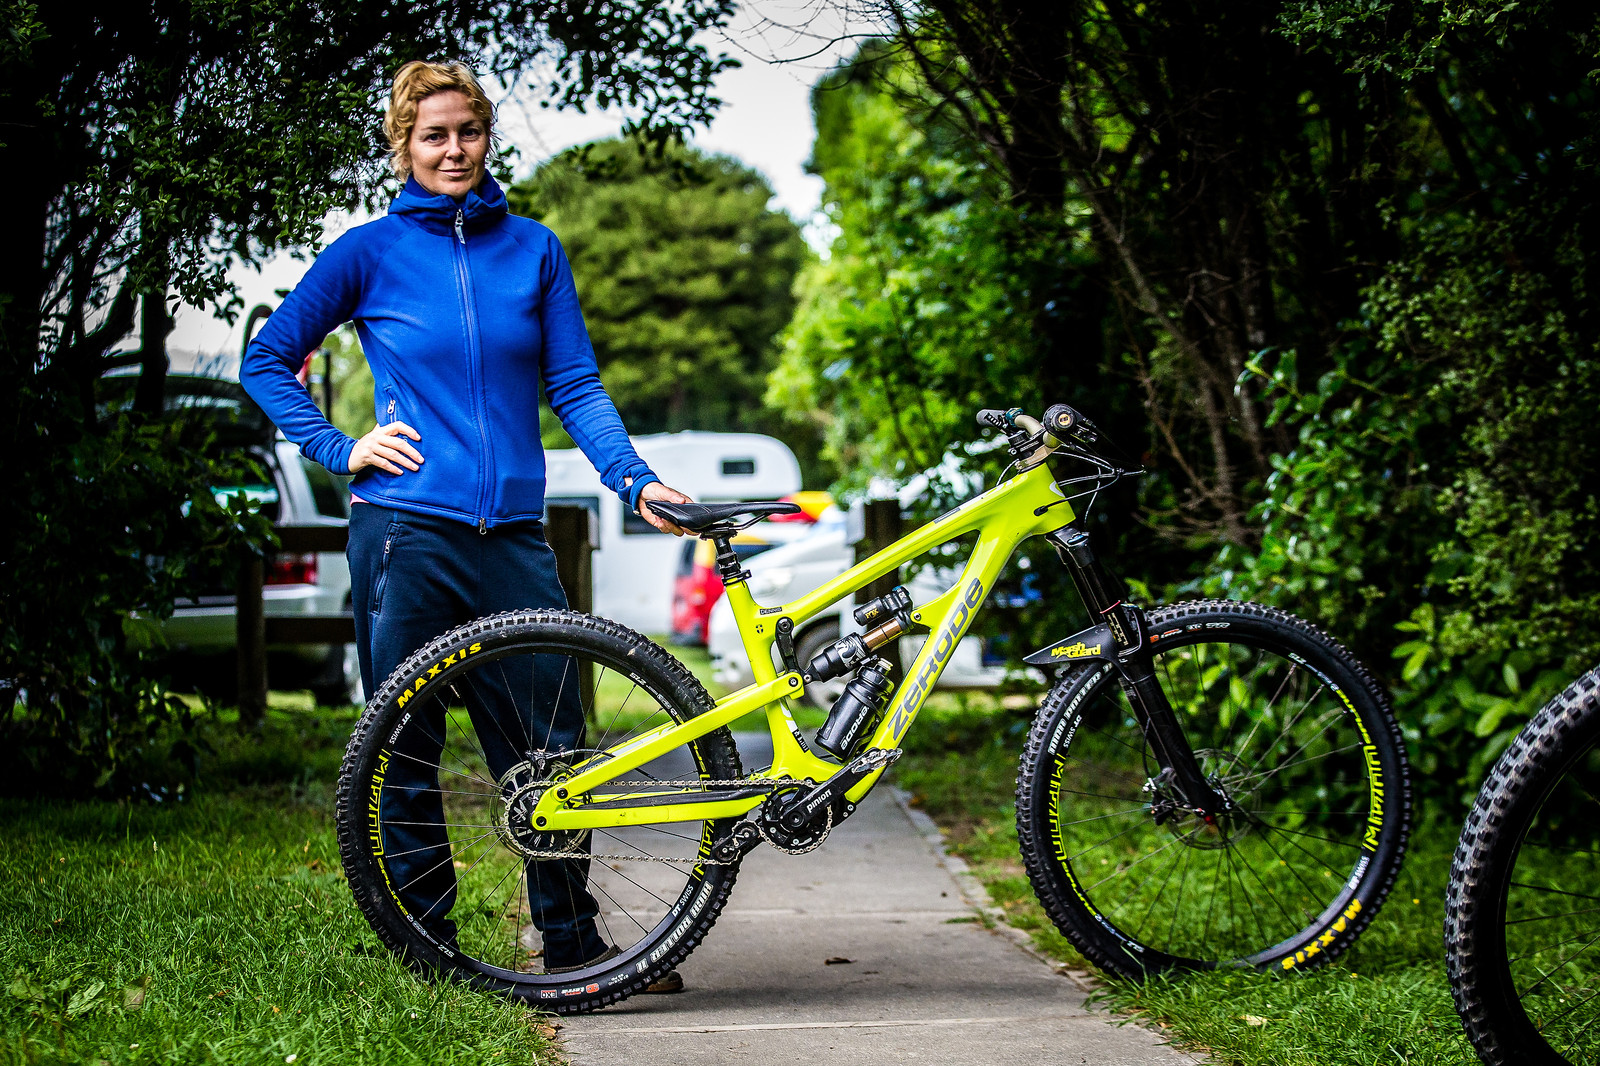 2017 NZ Enduro Pro Bikes - Lina Skoglund's Zerode Taniwha - 2017 NZ Enduro Pro Bikes - They Wreck 'Em, We Check 'Em - Mountain Biking Pictures - Vital MTB